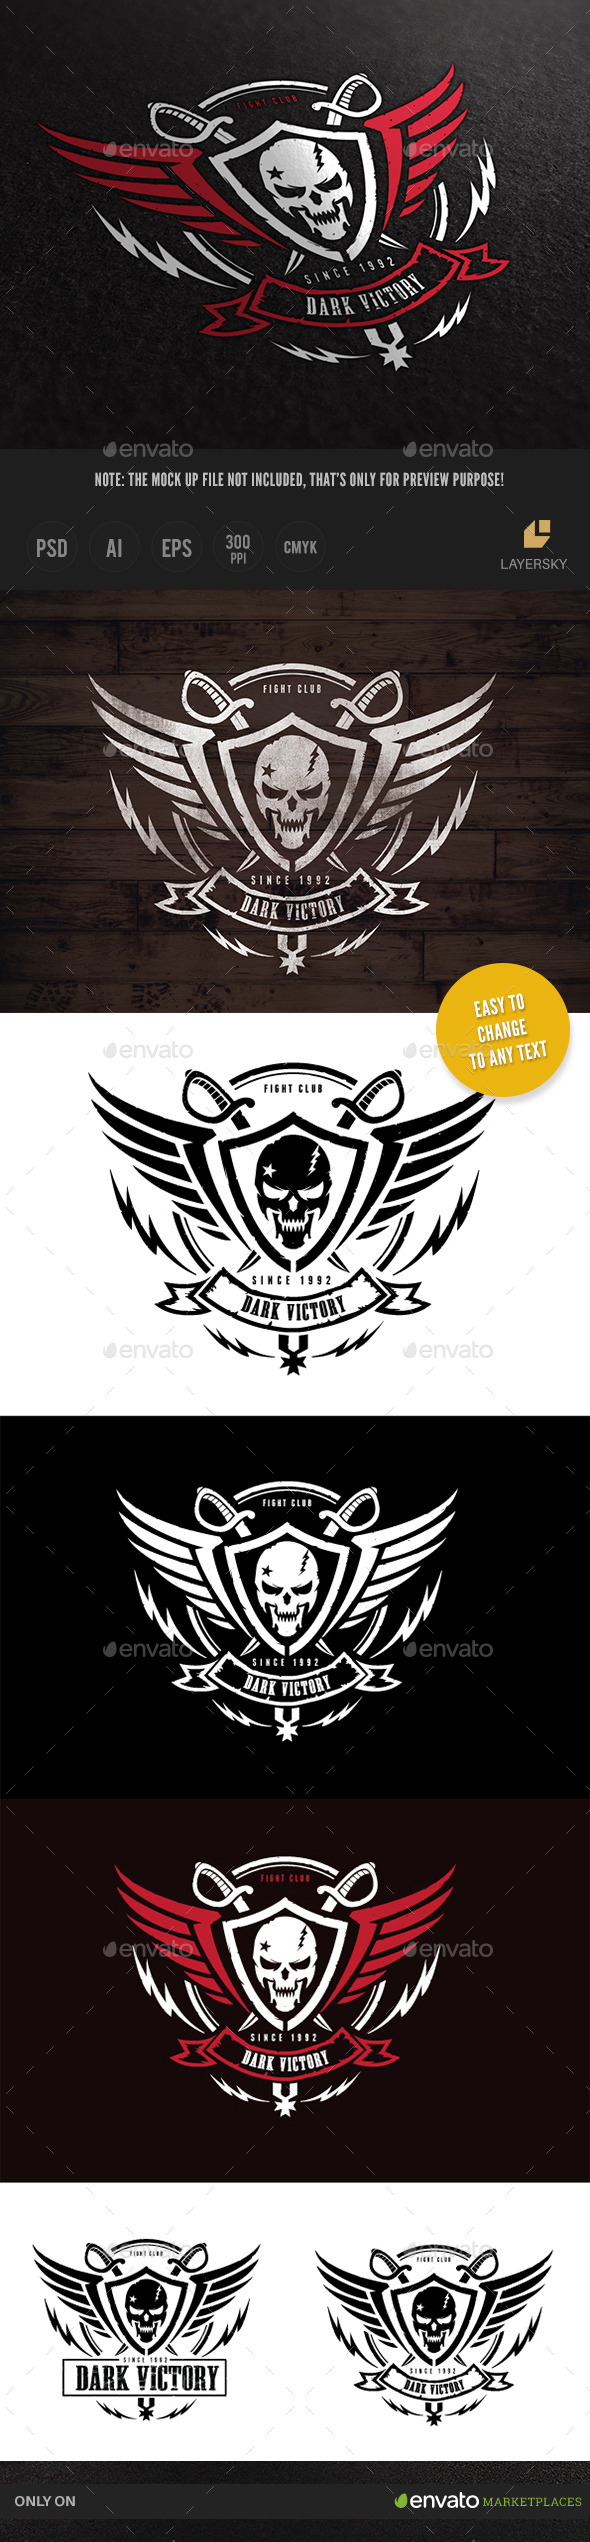 GraphicRiver Dark Victory 10053194